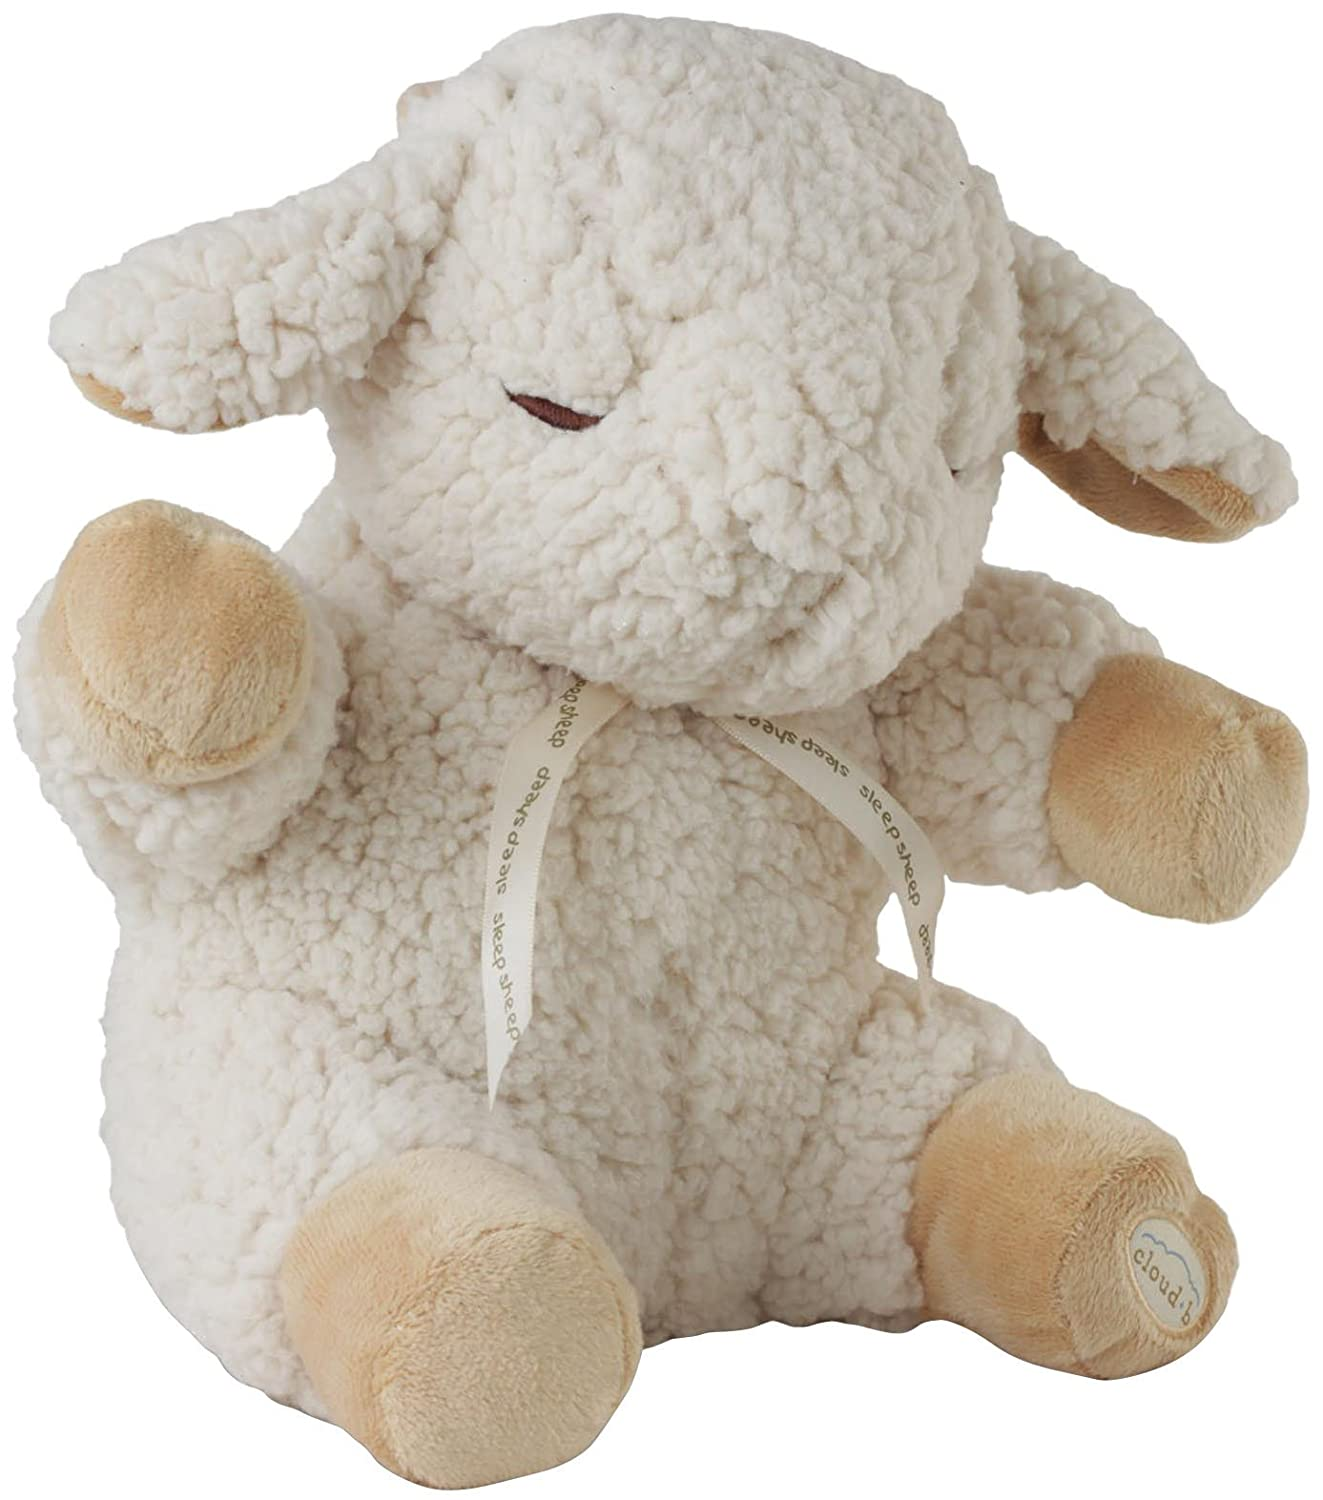 71aelIUul-L._SL1500_ Learn how this sleep sheep sound soother machine can help Tiny tots sleep better